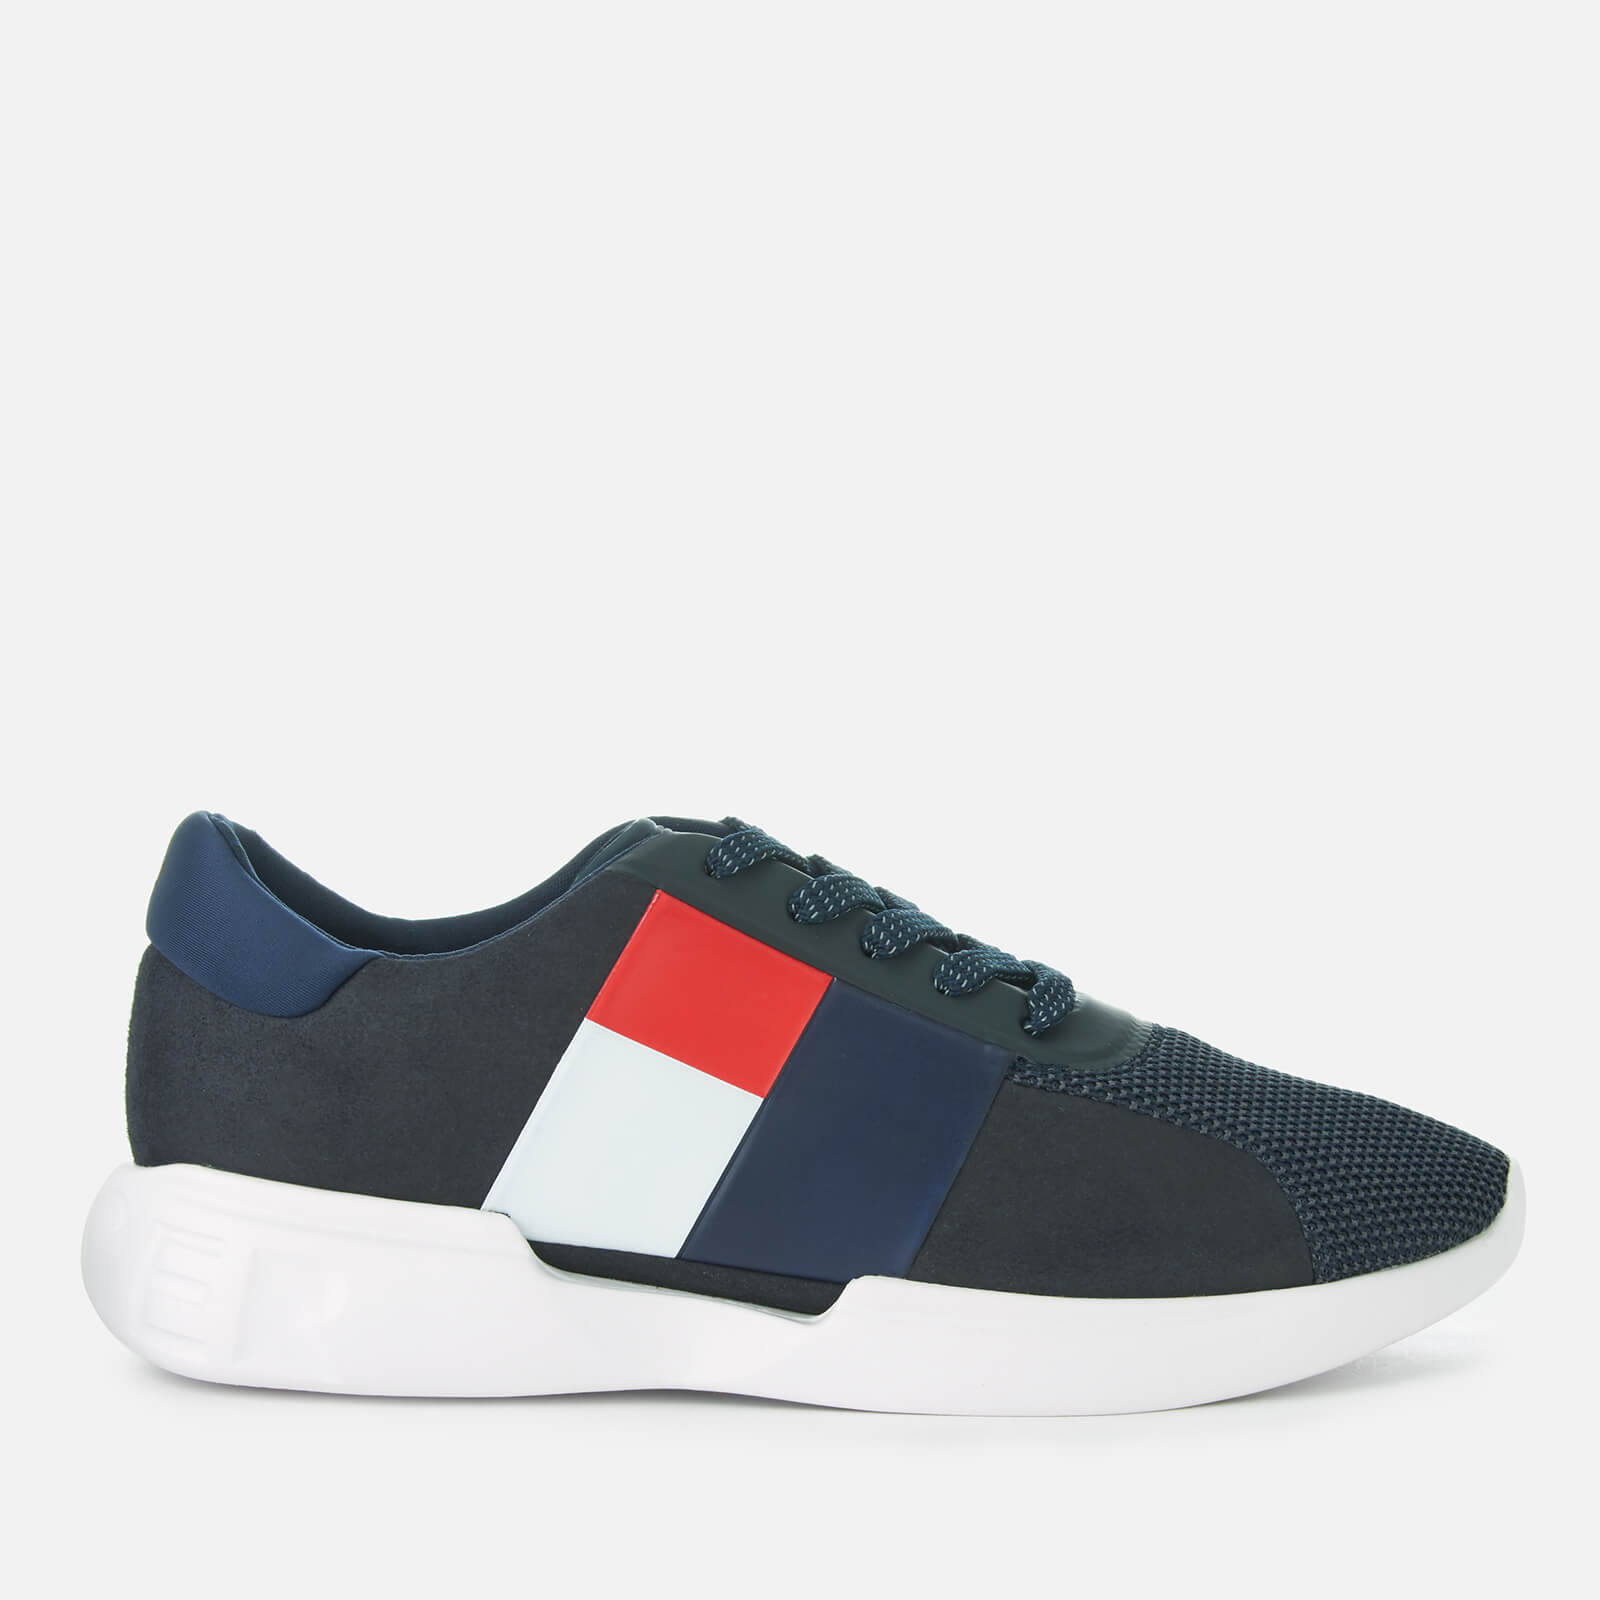 059a9e45926f Tommy Hilfiger Men s Lightweight Runner Style Trainers - Midnight Mens  Footwear